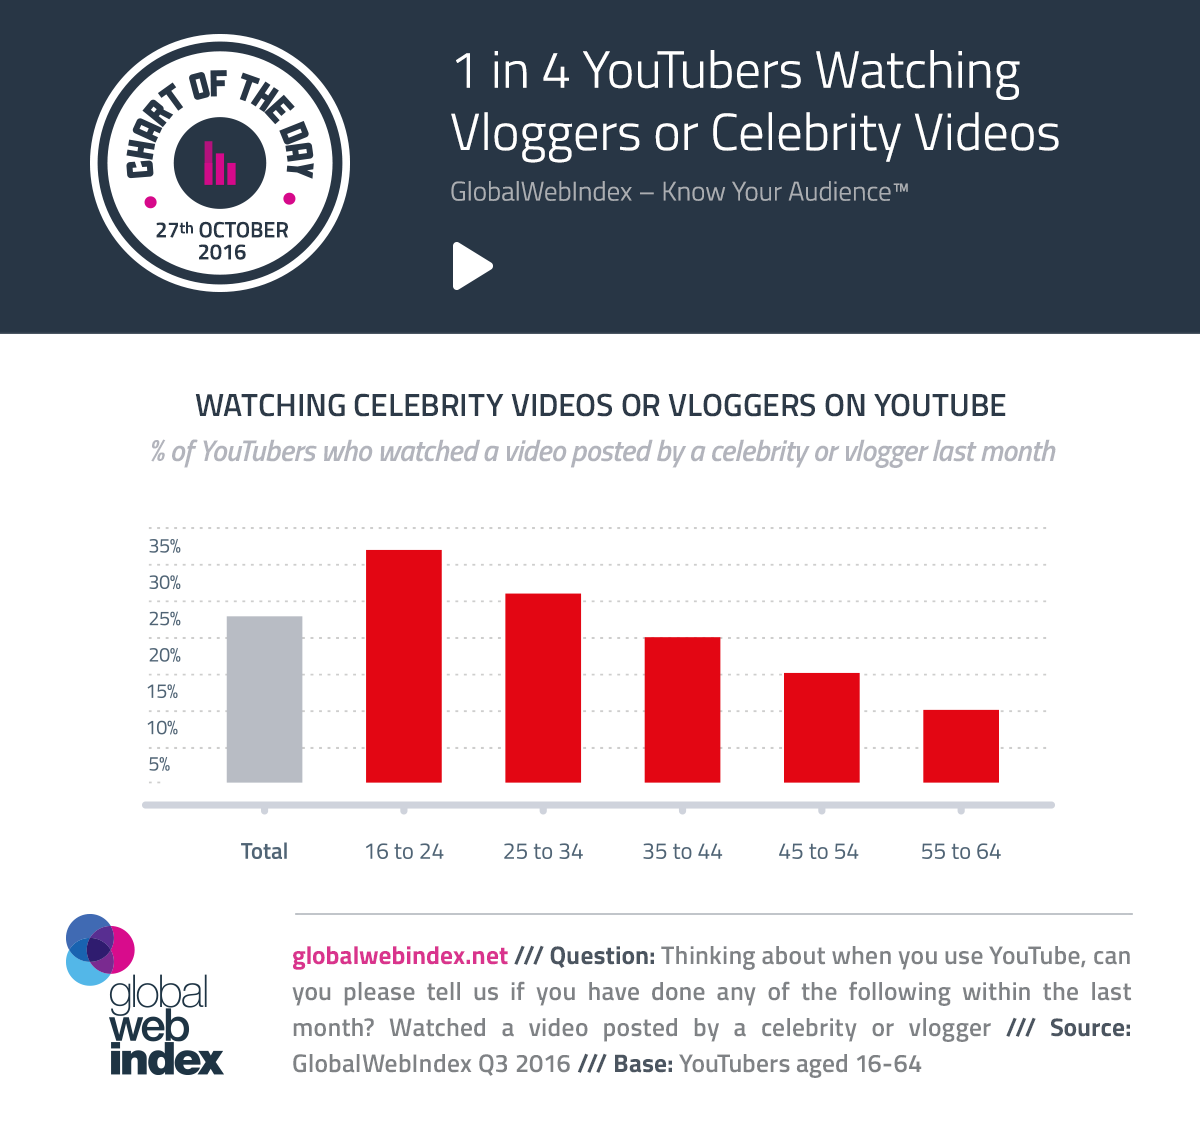 1 in 4 YouTubers Watching Vloggers or Celebrity Videos